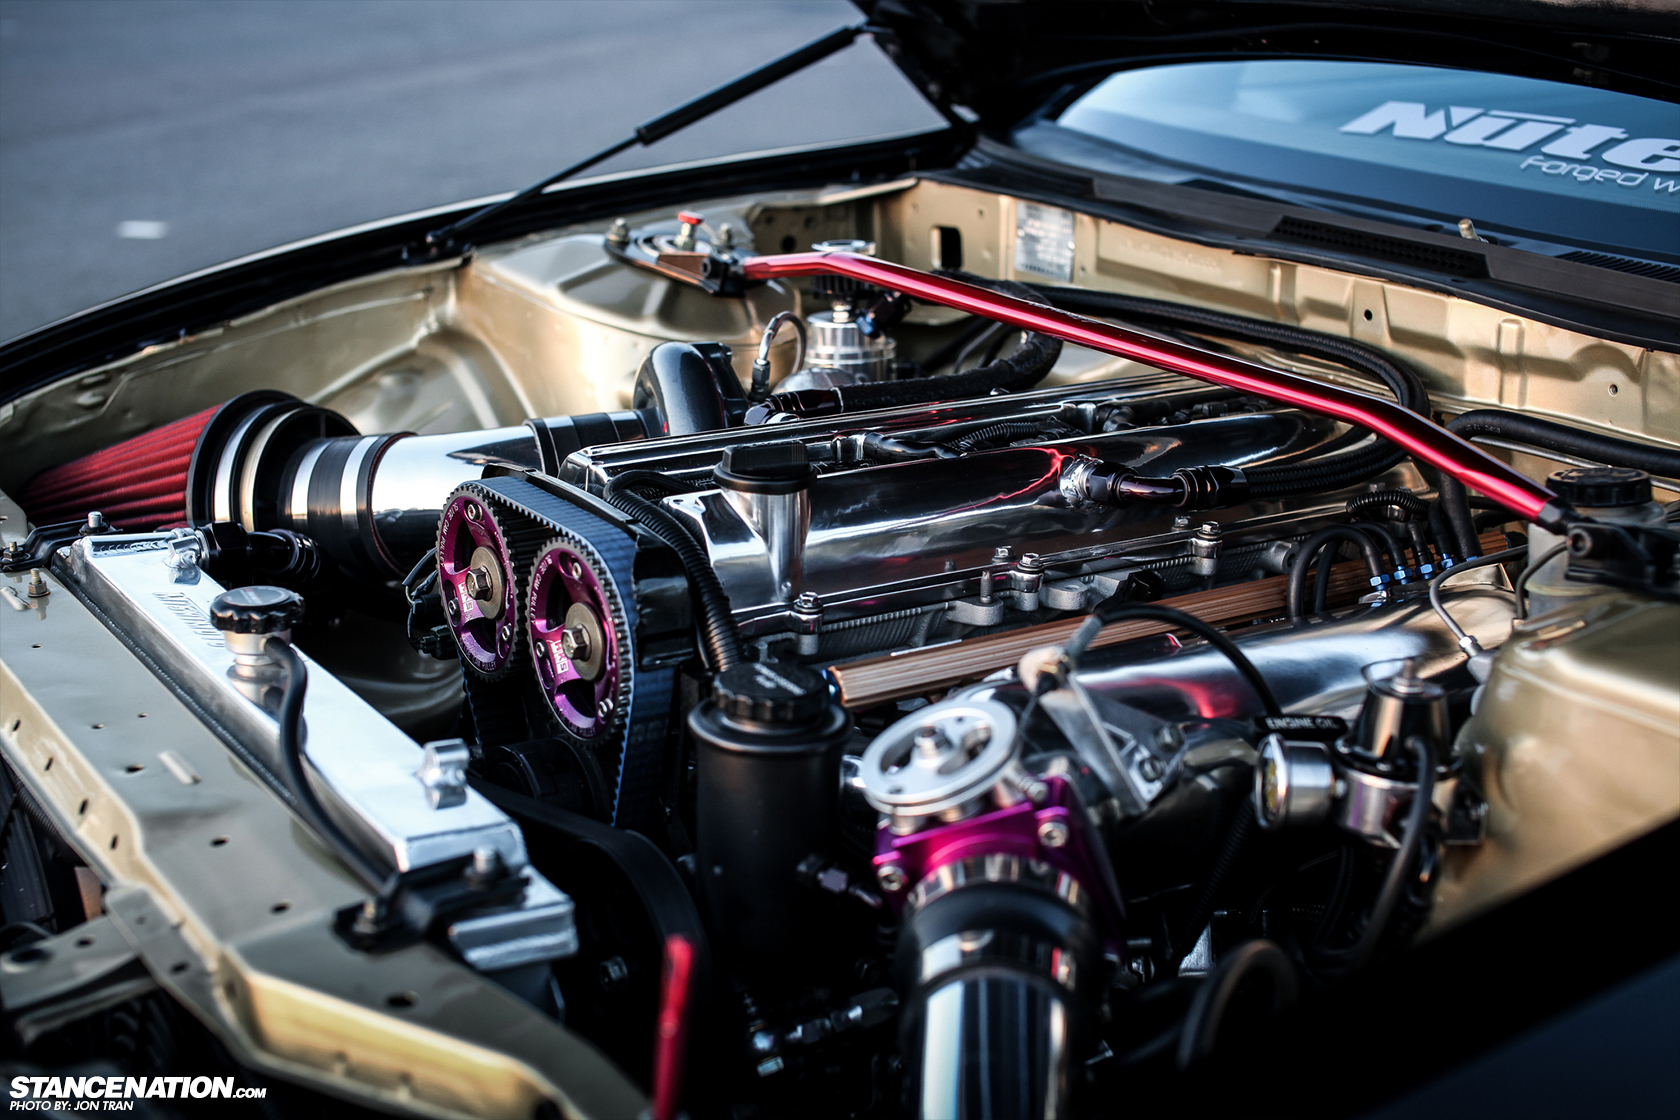 Nissan 240sx S14 Powered With 2jz Engine Via Stancenation Bhtuning Com Tuning Styling